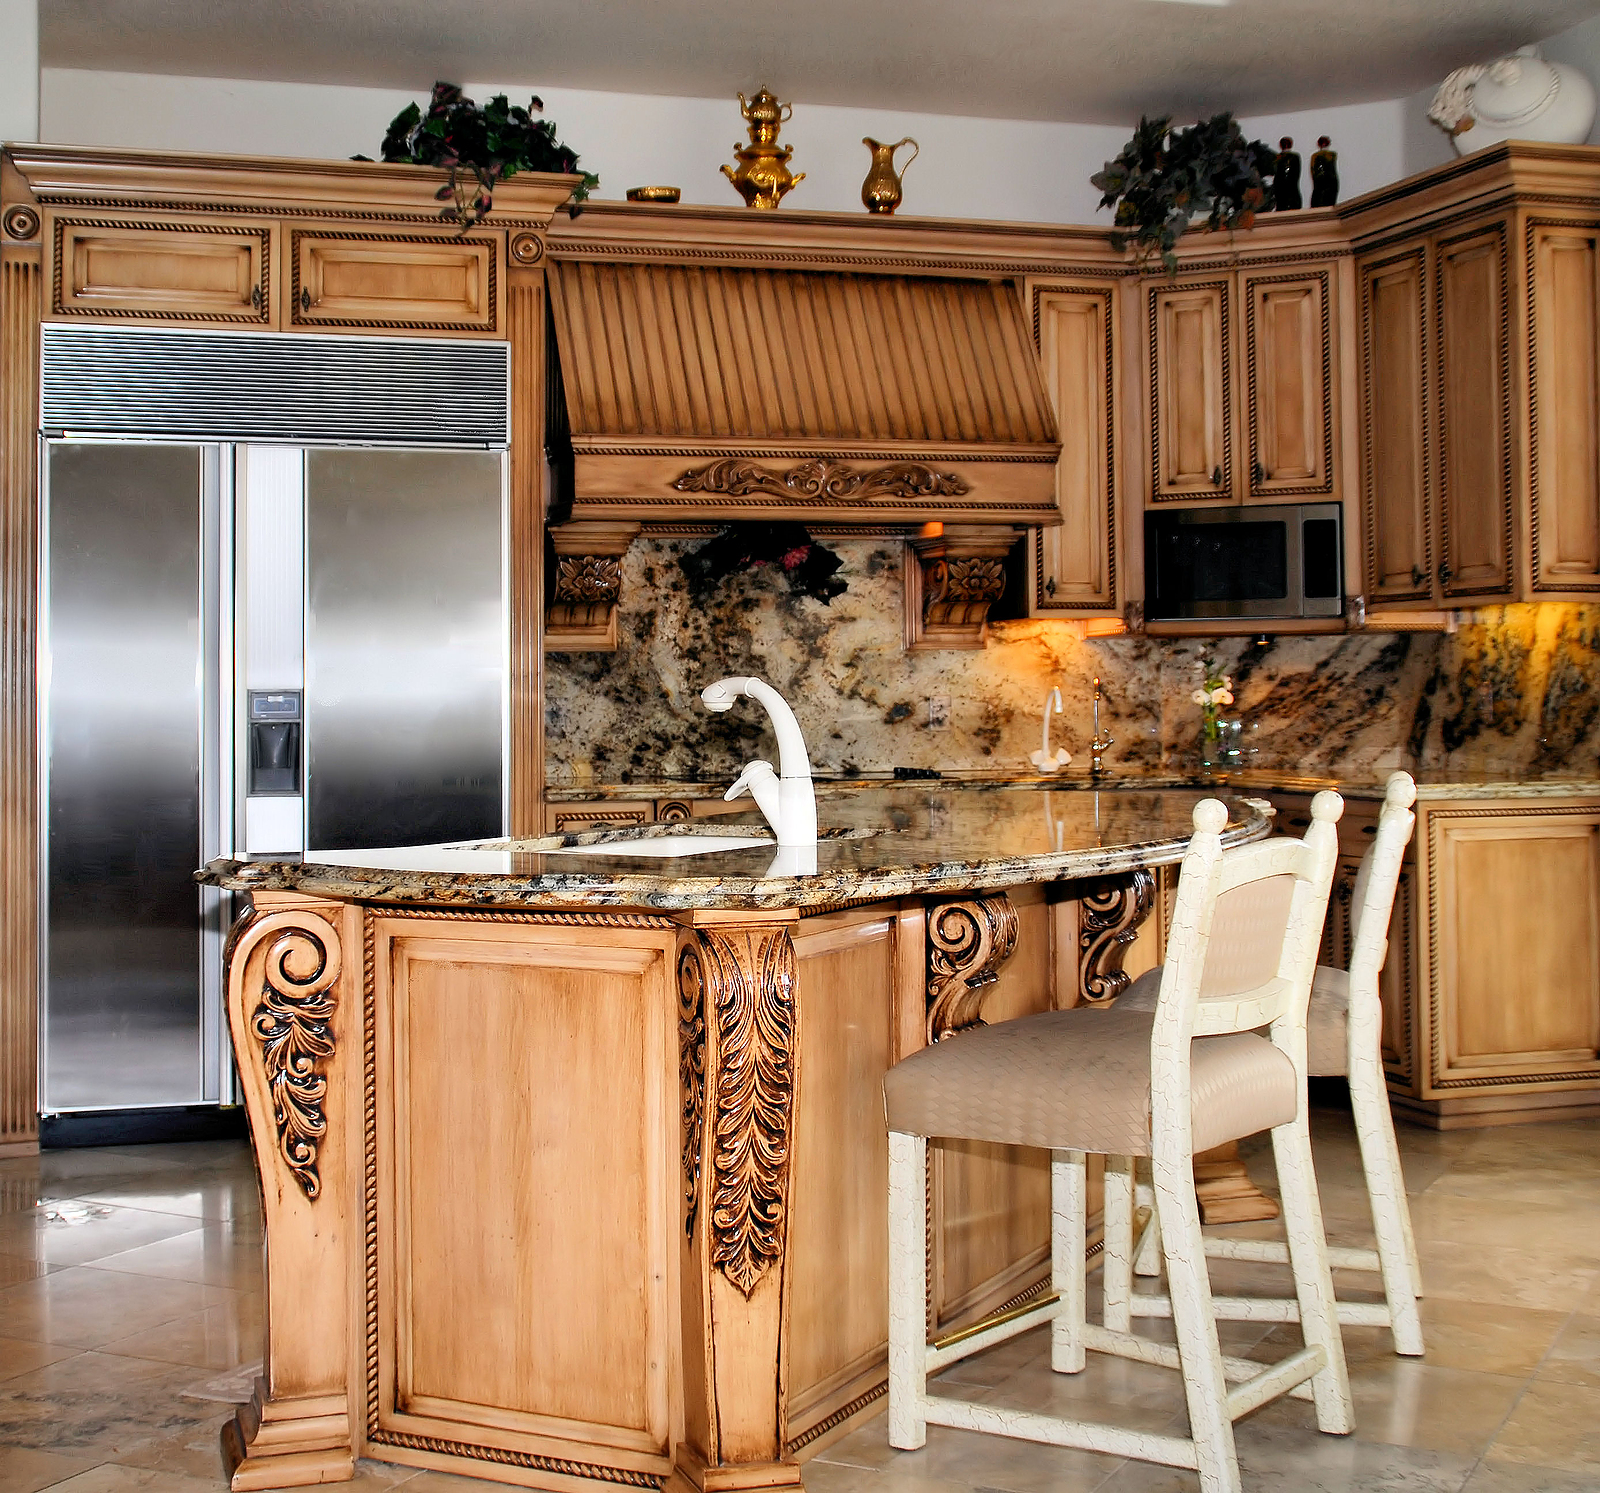 Donco designs is a pompano beach remodeling contractor for Kitchen cabinet remodel ideas